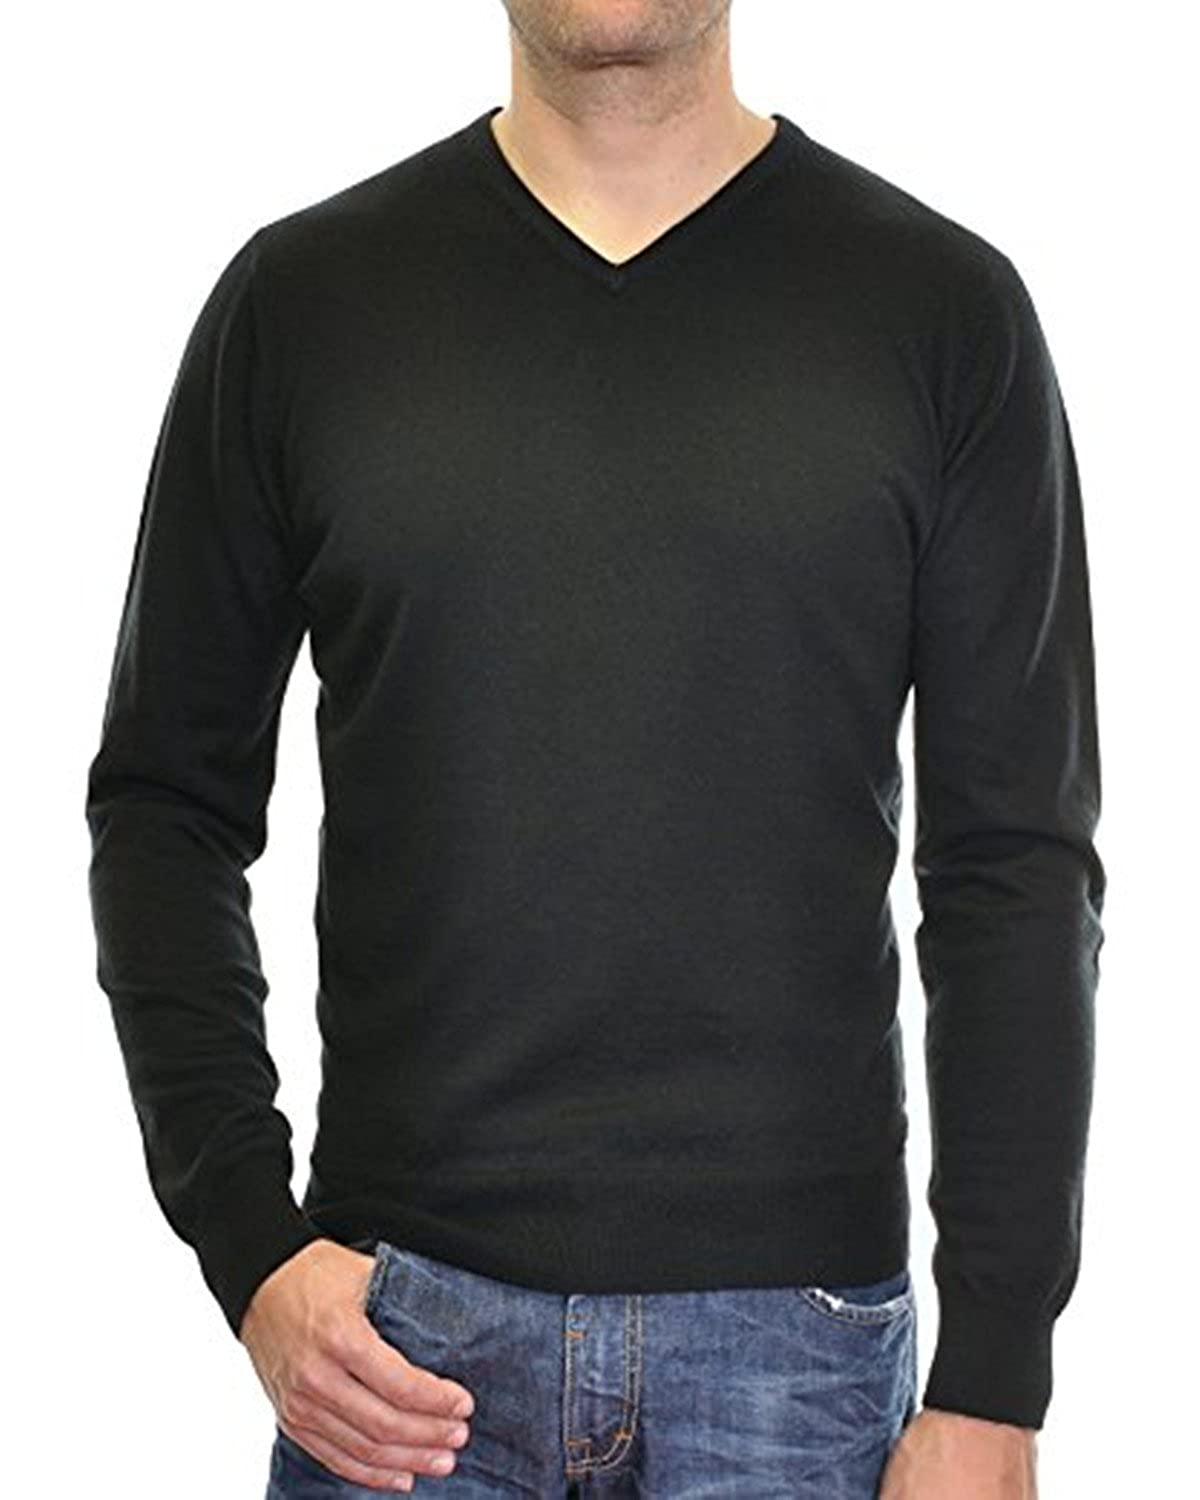 StyleDome Men's Basic Casual Cotton Long Sleeve Tops Slim V Neck Sweatshirts